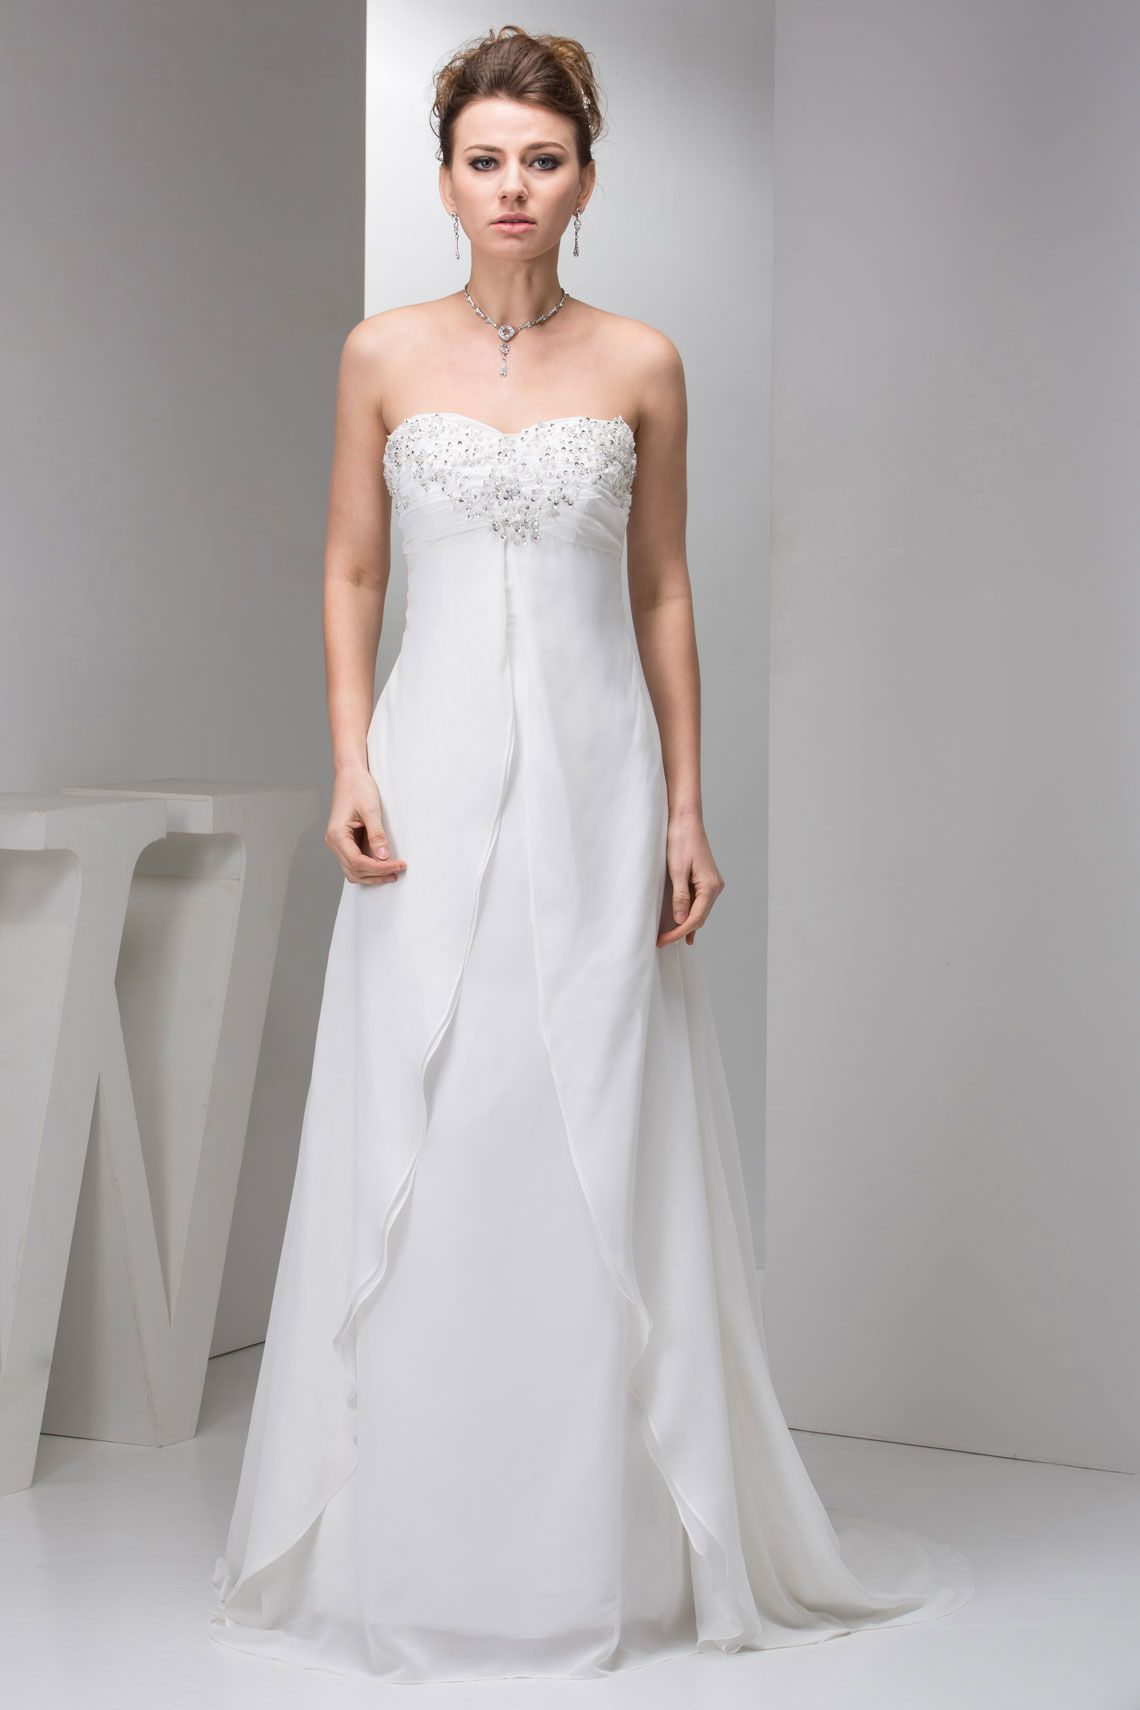 Chiffon wedding dresses  Sleeveless Brush Train Beaded Empire Draping Sheath Wedding Dress